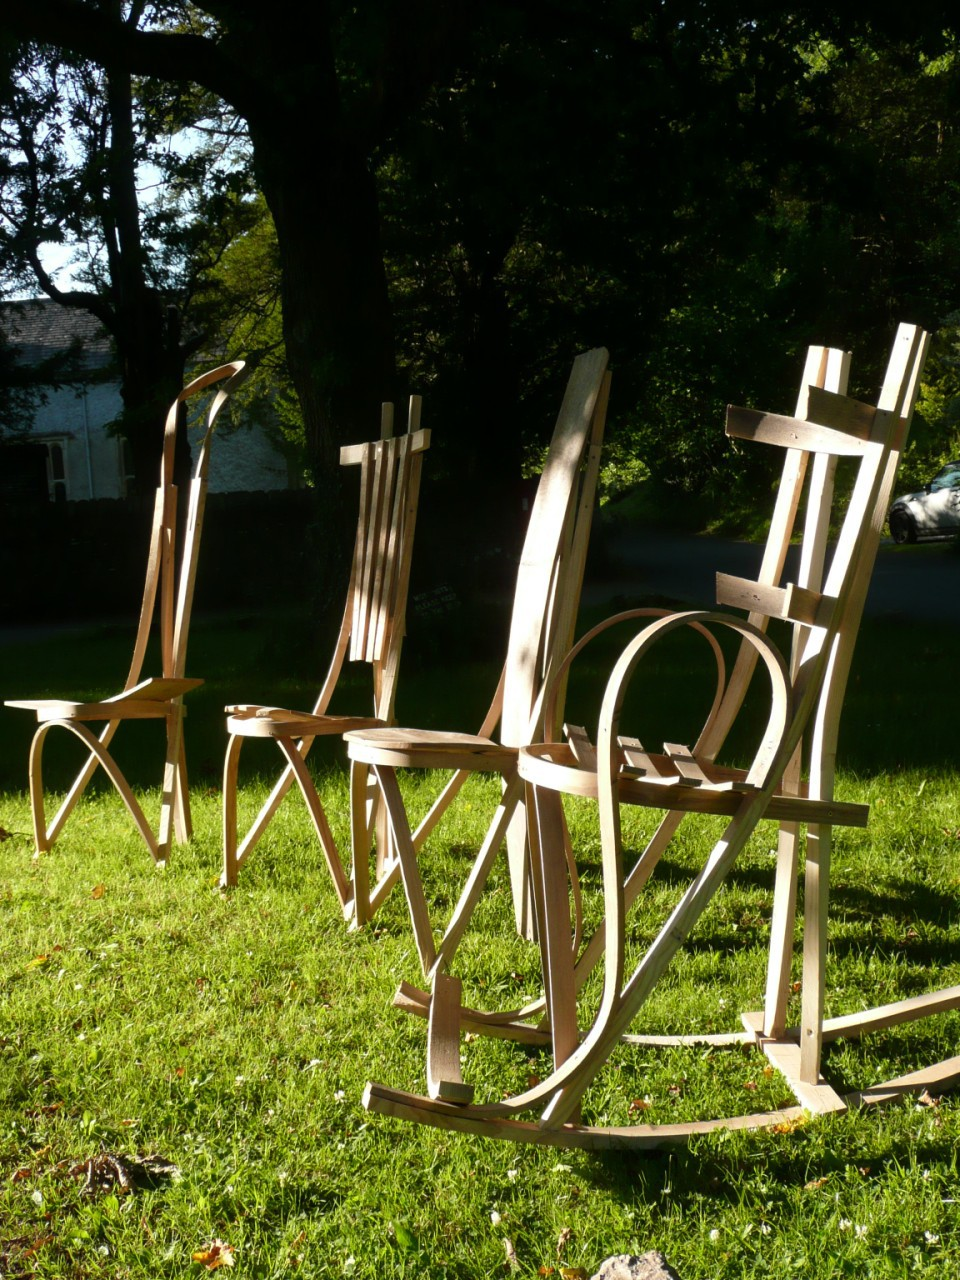 steambending, steambent, chair, furniture, woodwork, sunshine